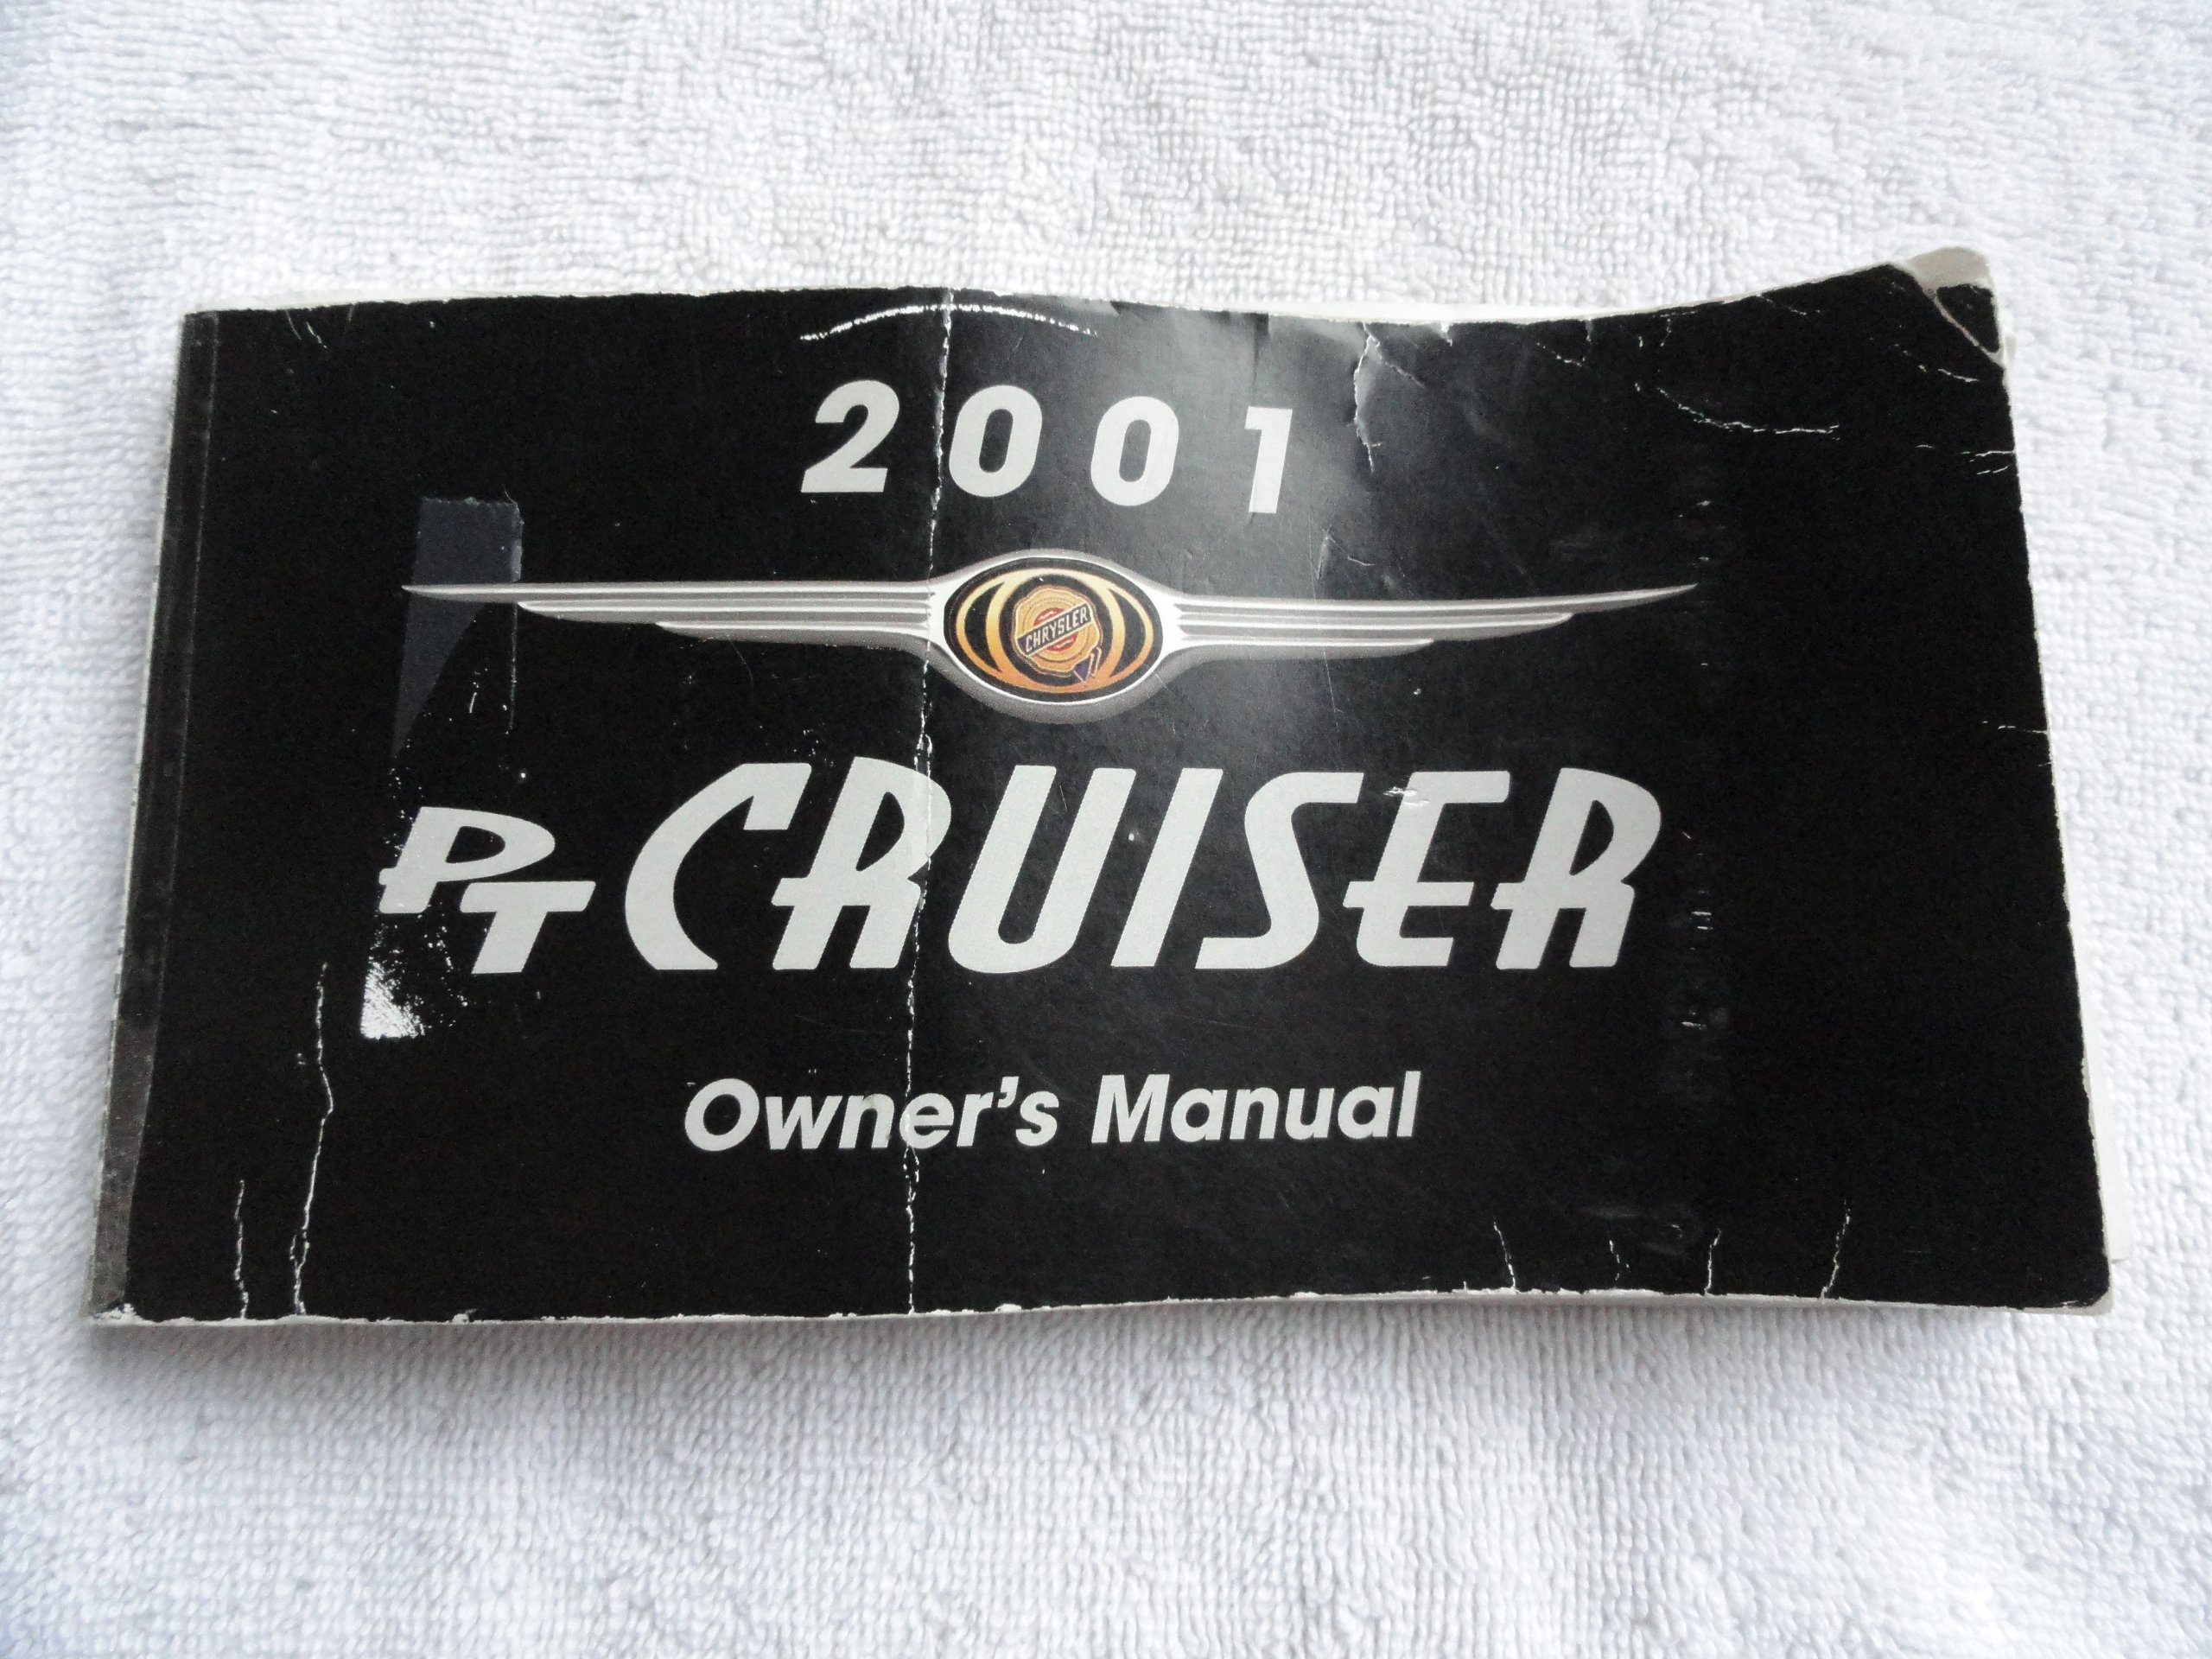 2001 Chrysler PT Cruiser Owners Manual: CHRYSLER: 0740671100202:  Amazon.com: Books